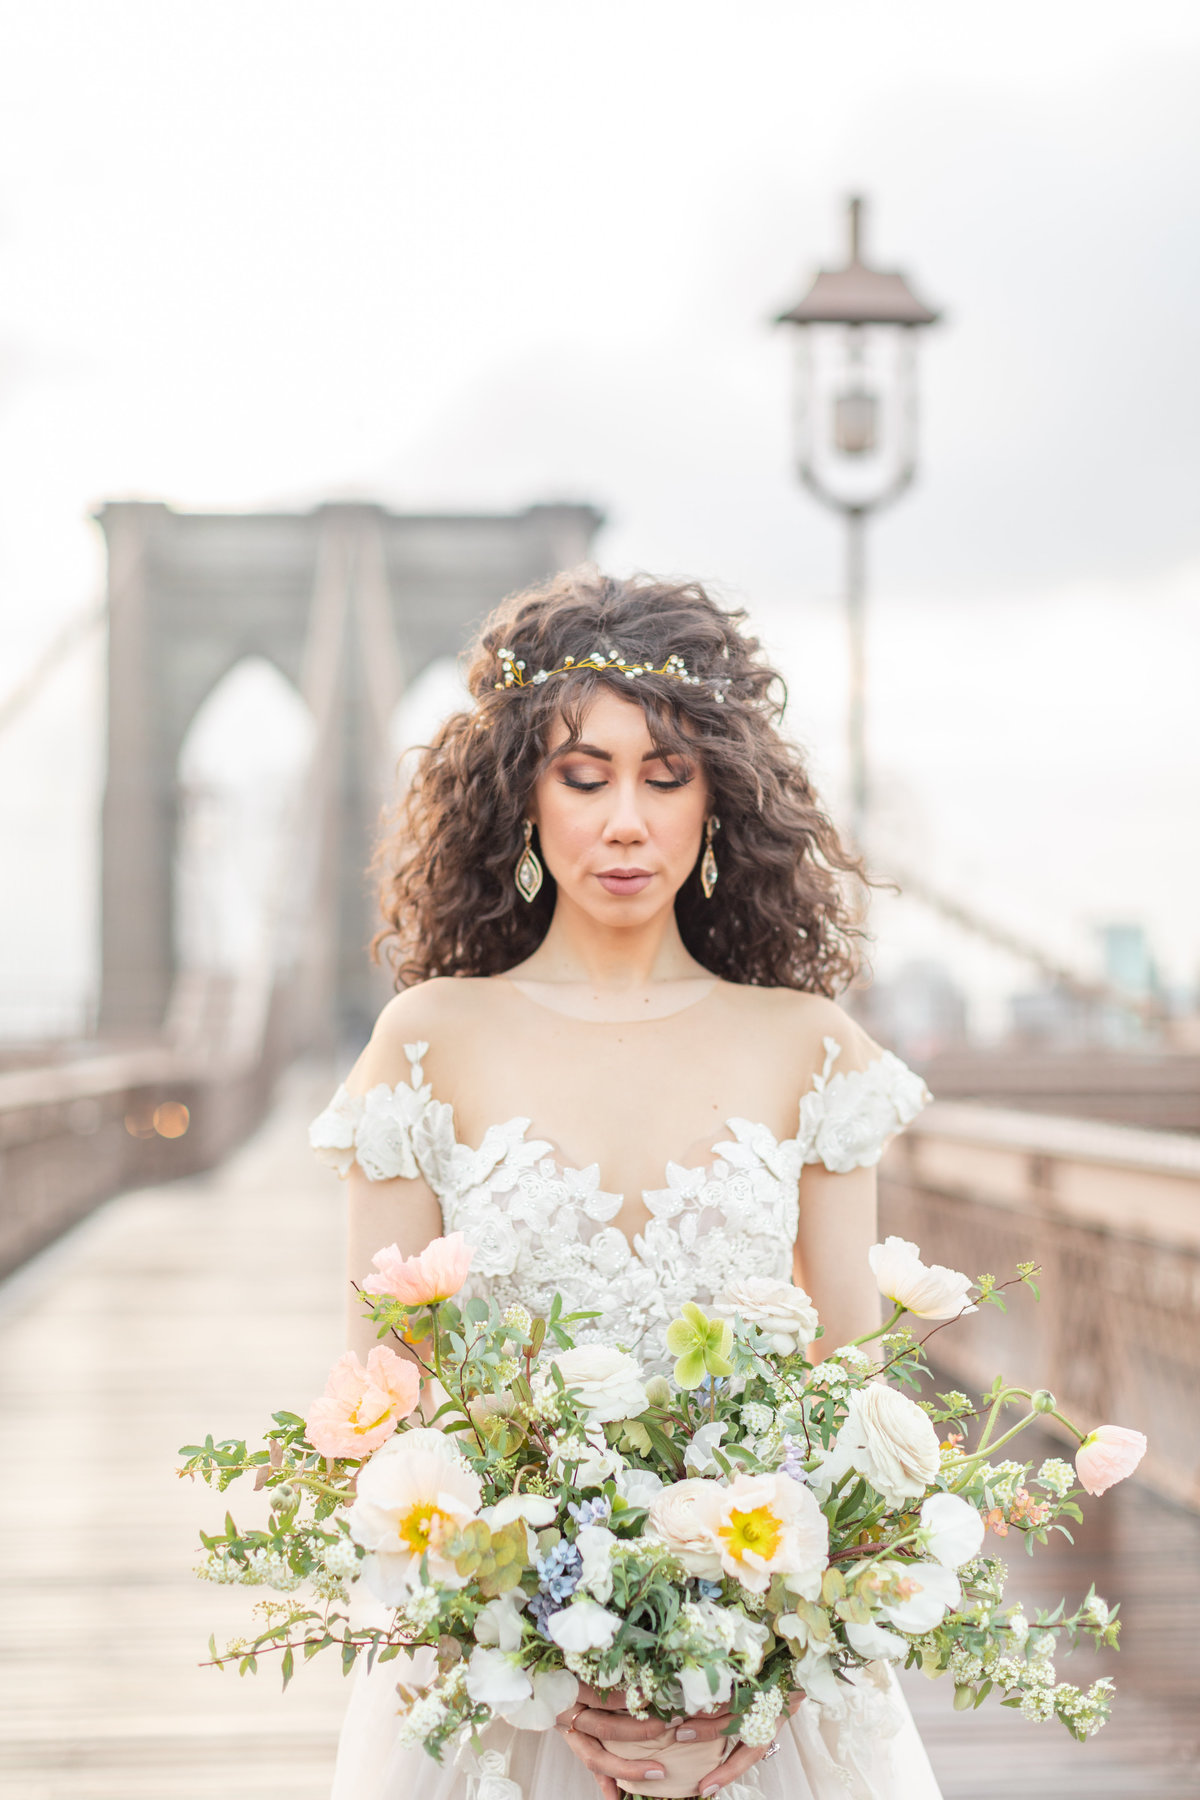 Bride at Brooklyn Bridge wedding with white and greenery bouquet